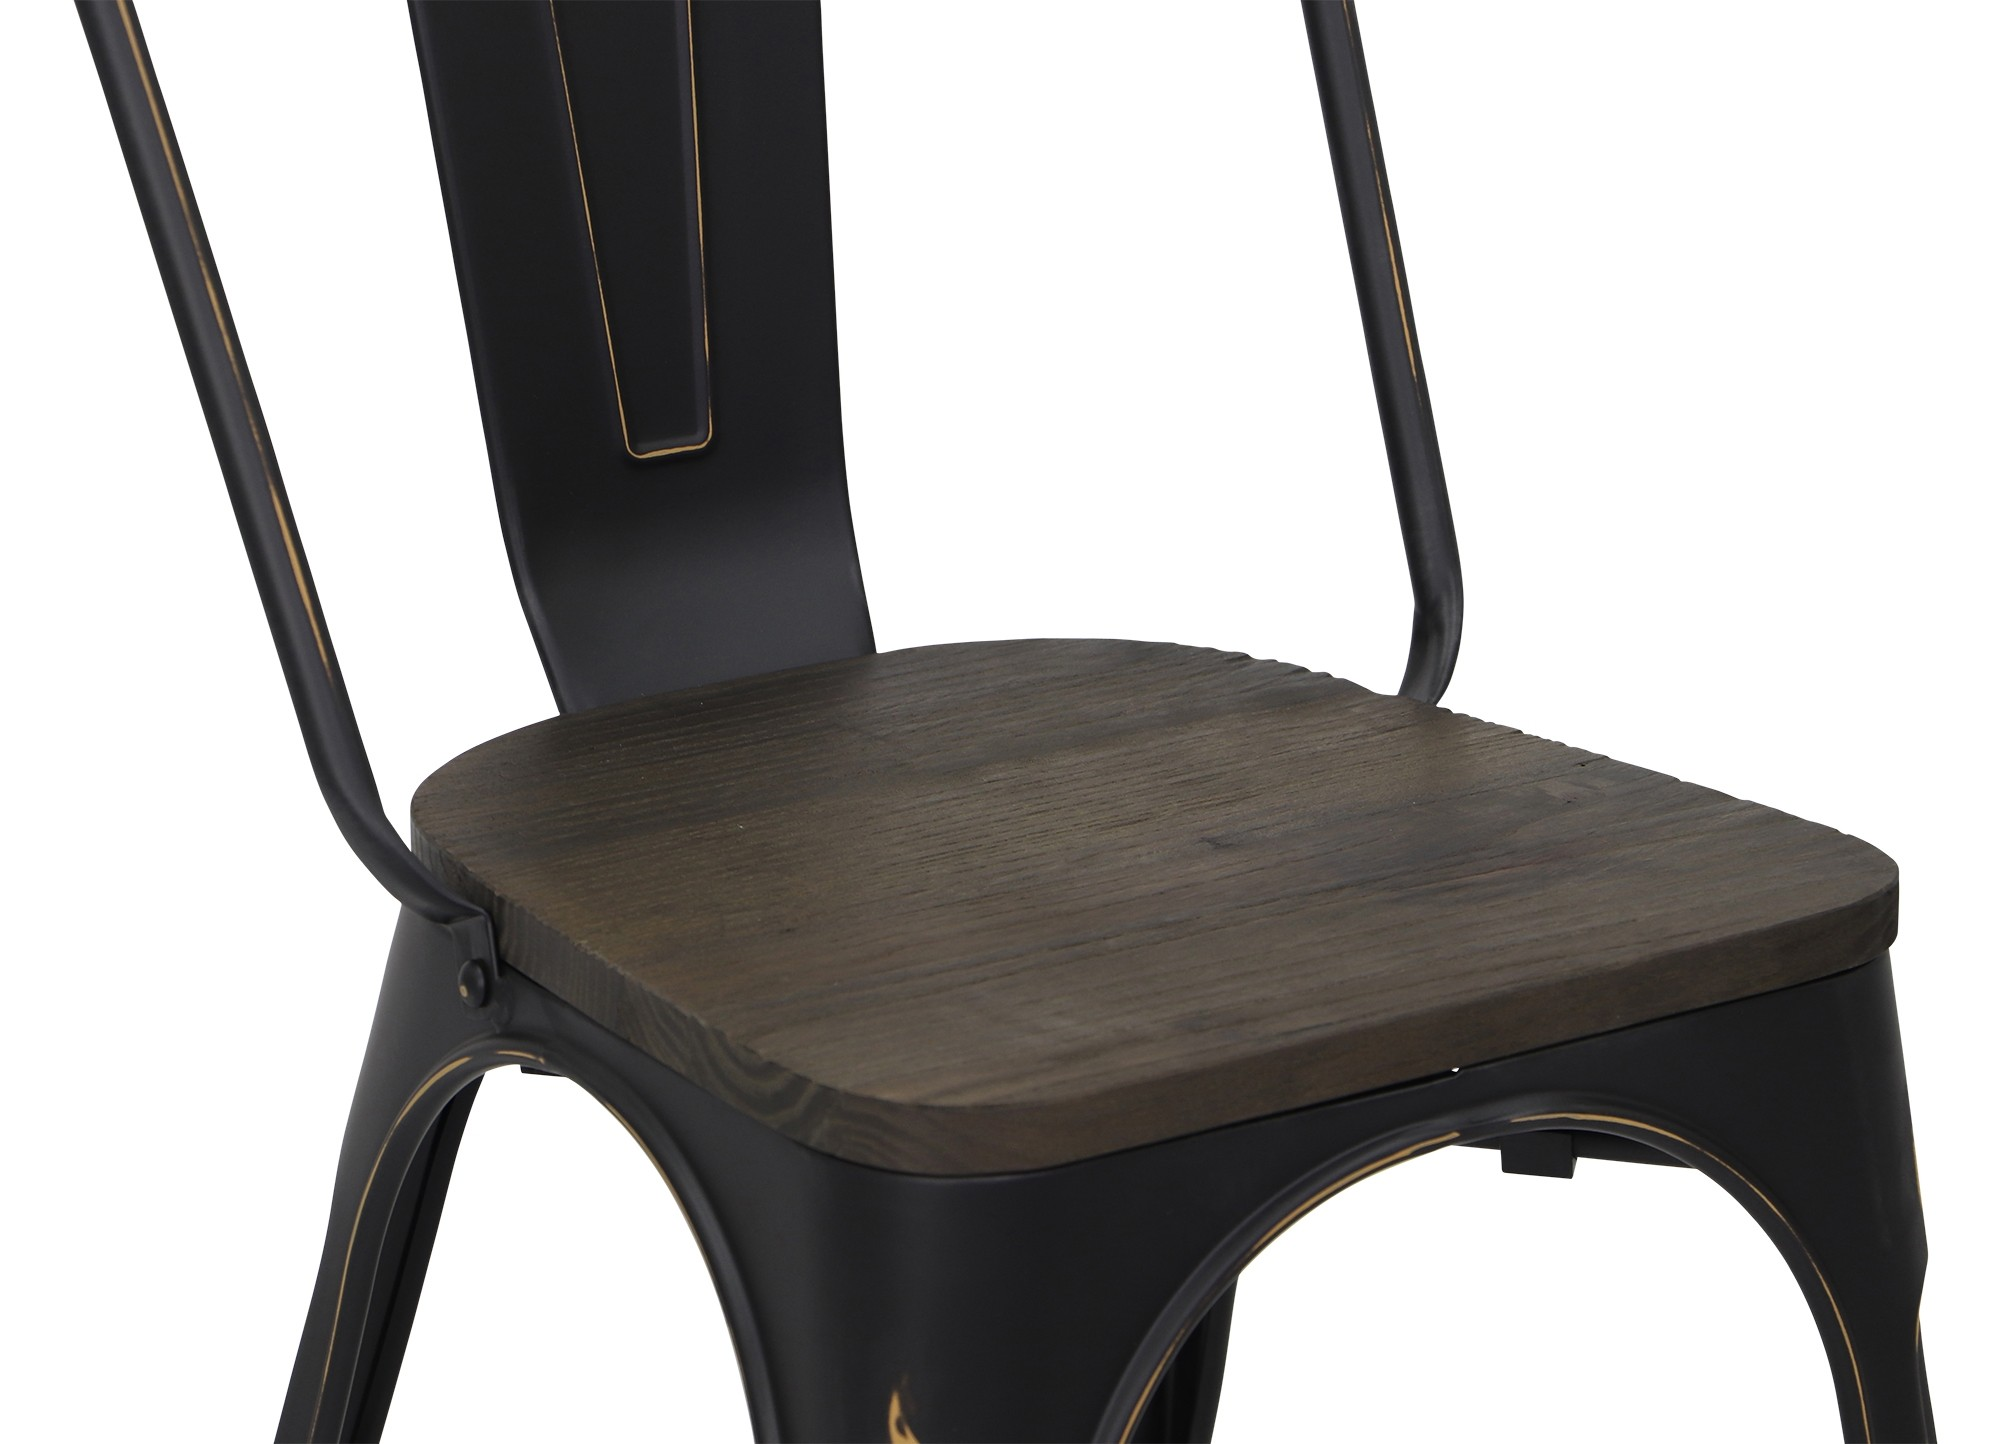 Metal Chair With Wood Seat Retro Metal Chair With Wooden Seat In Antique Black